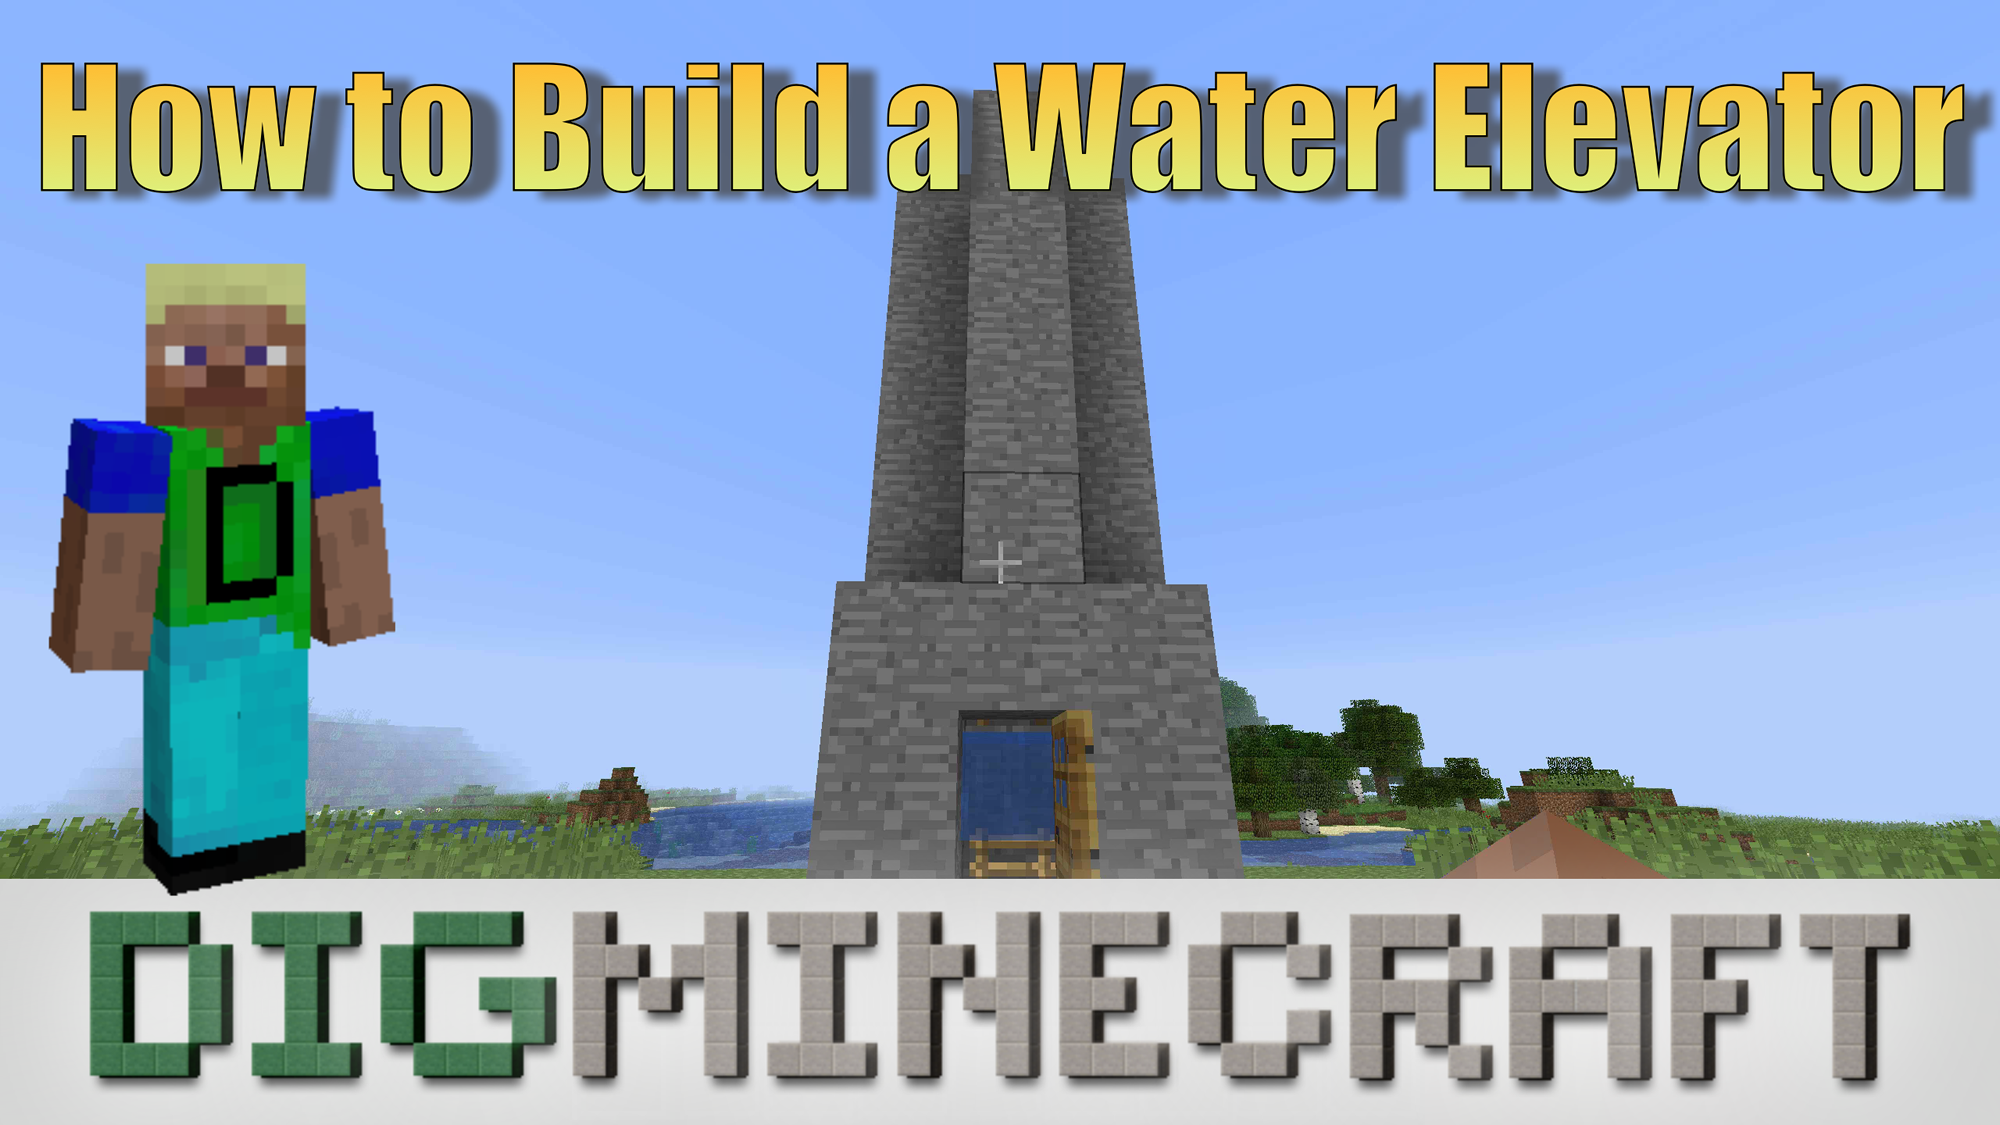 Learn How To Build A Water Elevator In Minecraft With These Very Easy Steps In This Youtube Video Building Youtube Videos Cn Tower